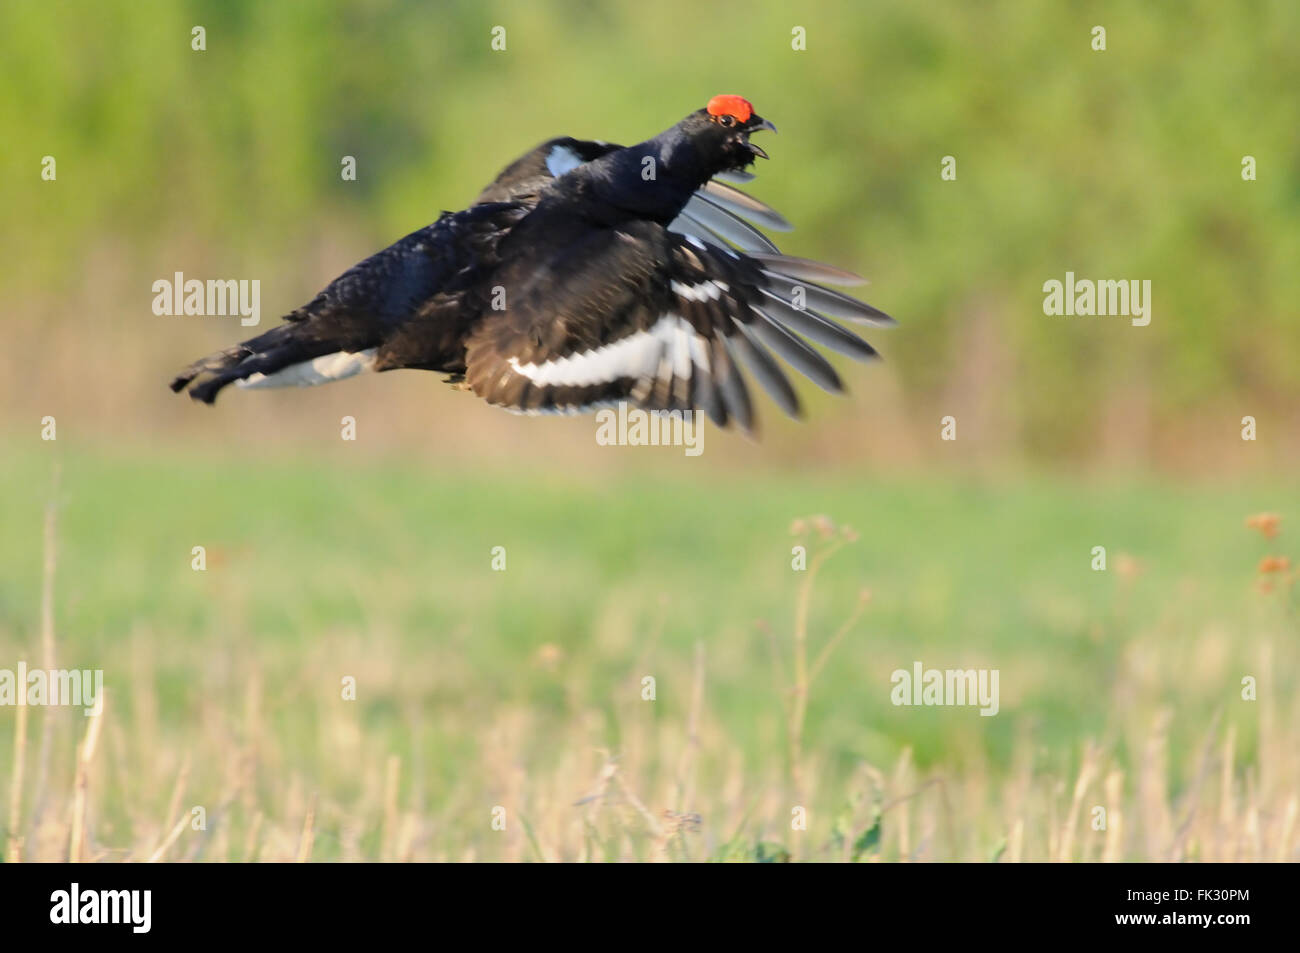 Mating call of flying male Black grouse (Tetrao tetrix) early morning. Moscow region, Russia - Stock Image